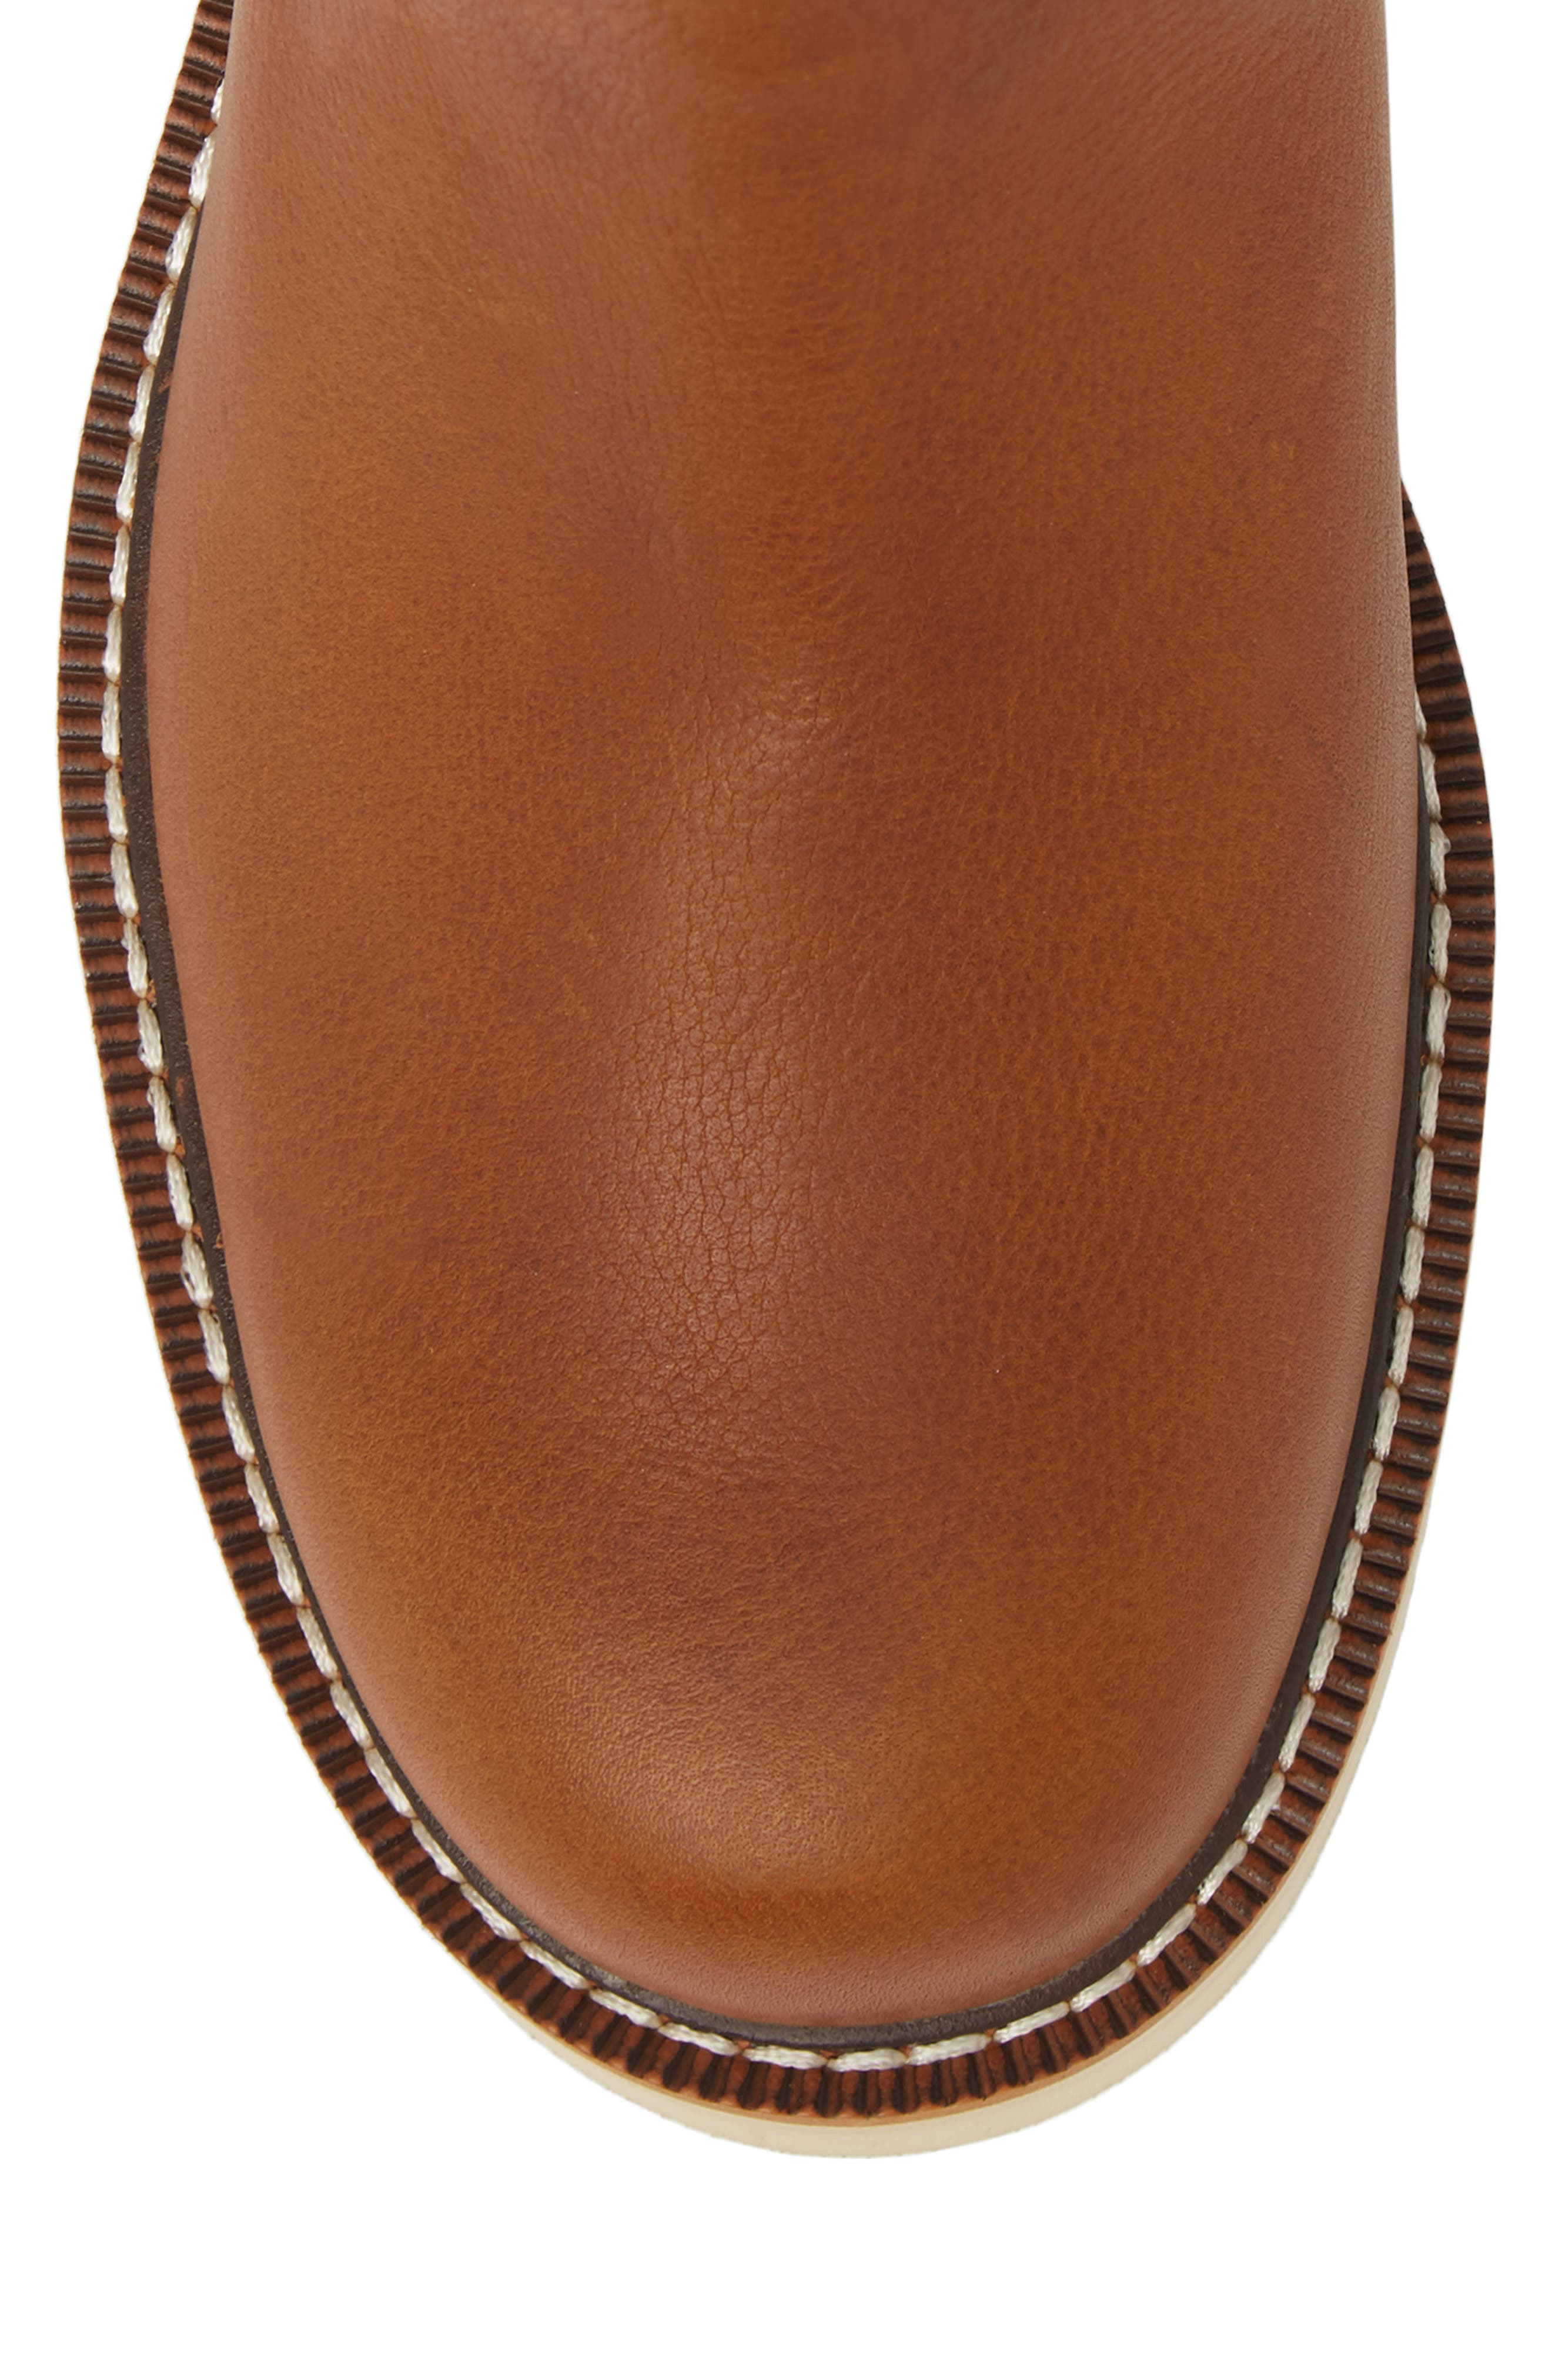 ARIAT, Rambler Recon Mid Chelsea Boot, Alternate thumbnail 5, color, GOLDEN GRIZZLY